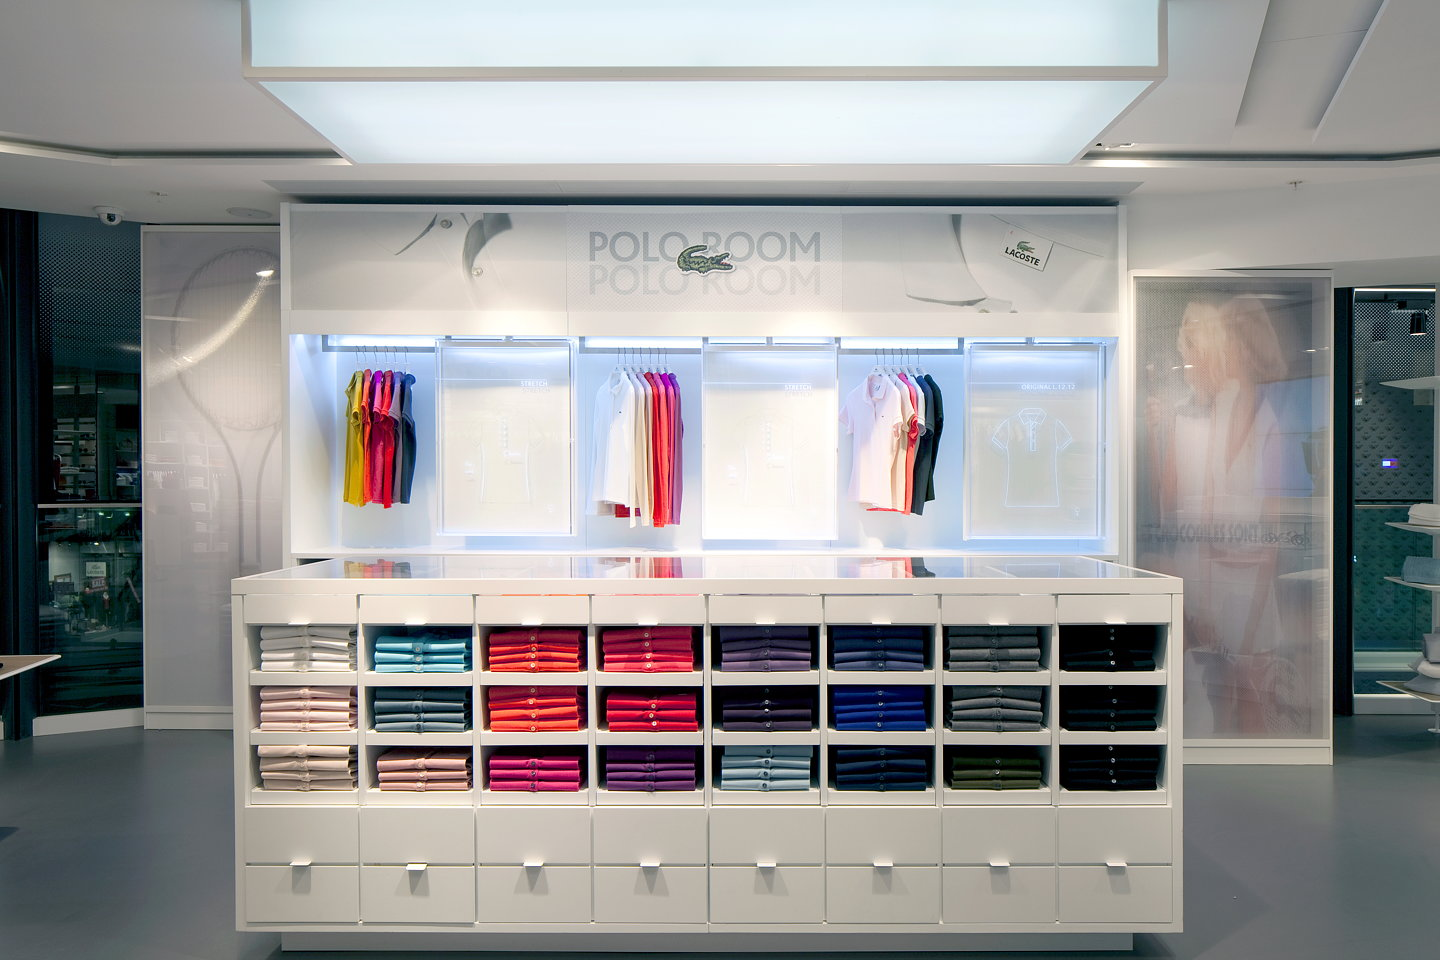 Designlsm Designs Lacoste Knightsbridge Flagship Store